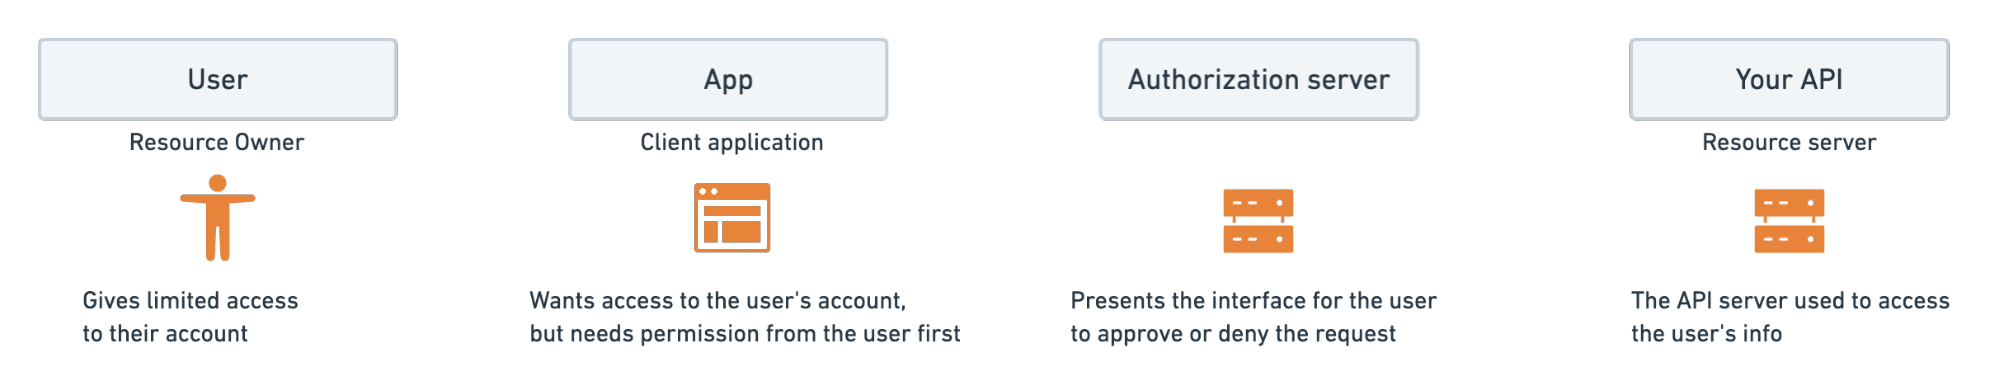 OAuth 2.0 Workflow Roles